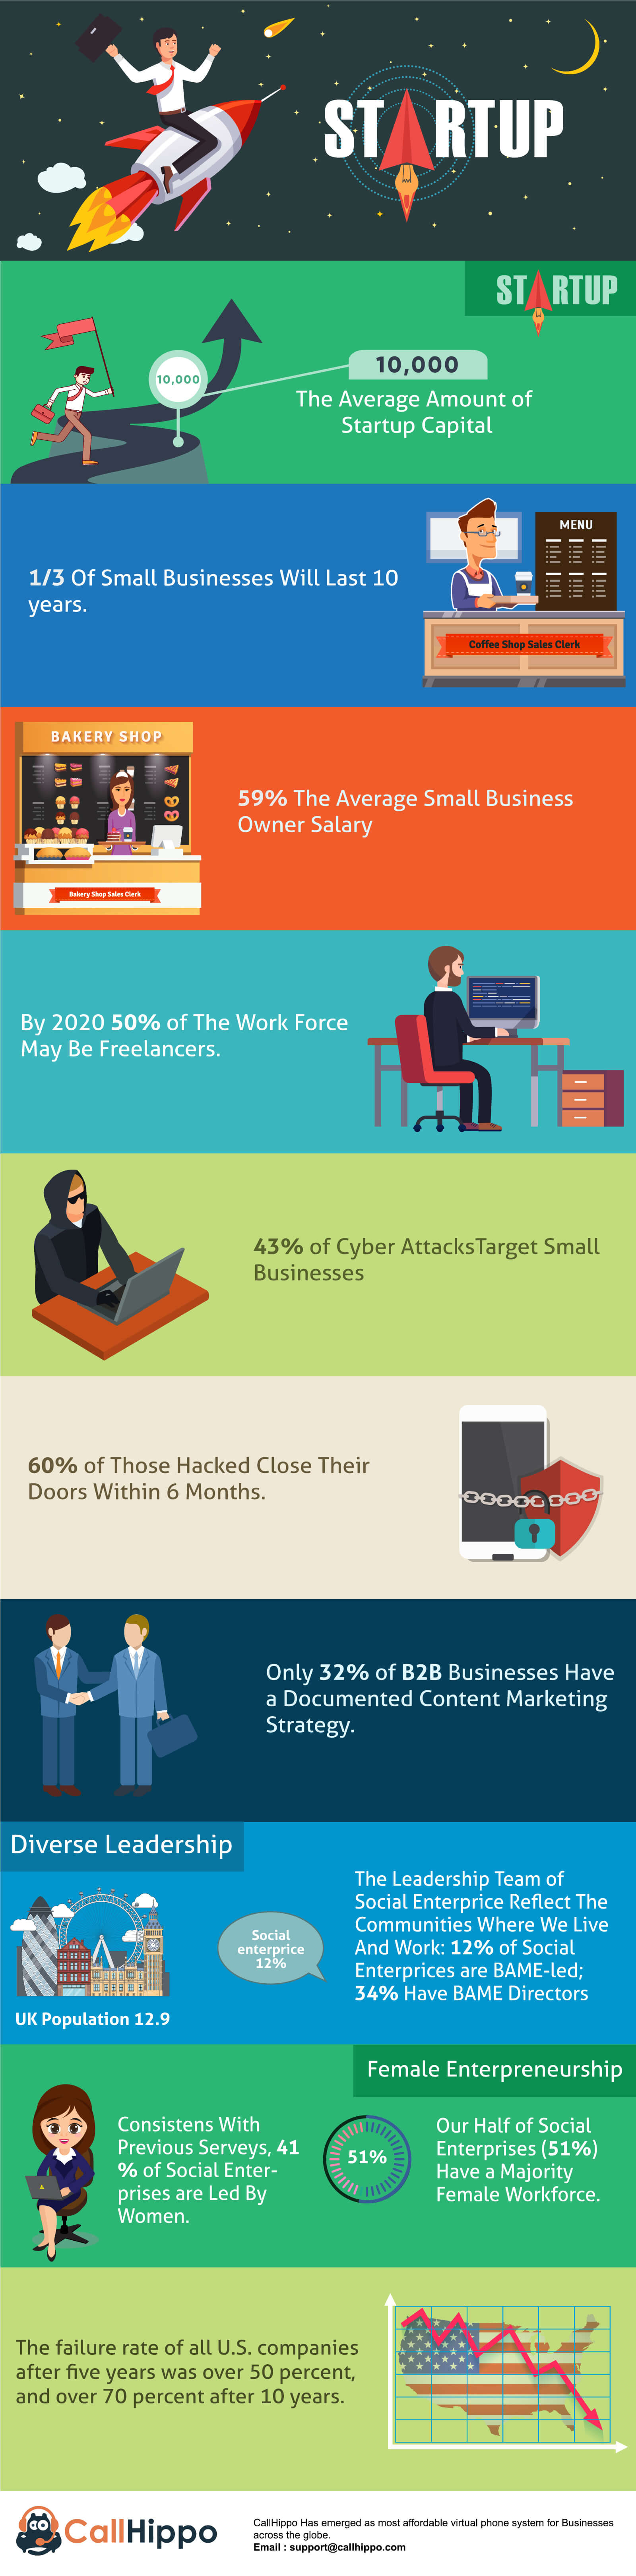 Startup Facts and Figures_CallHippo